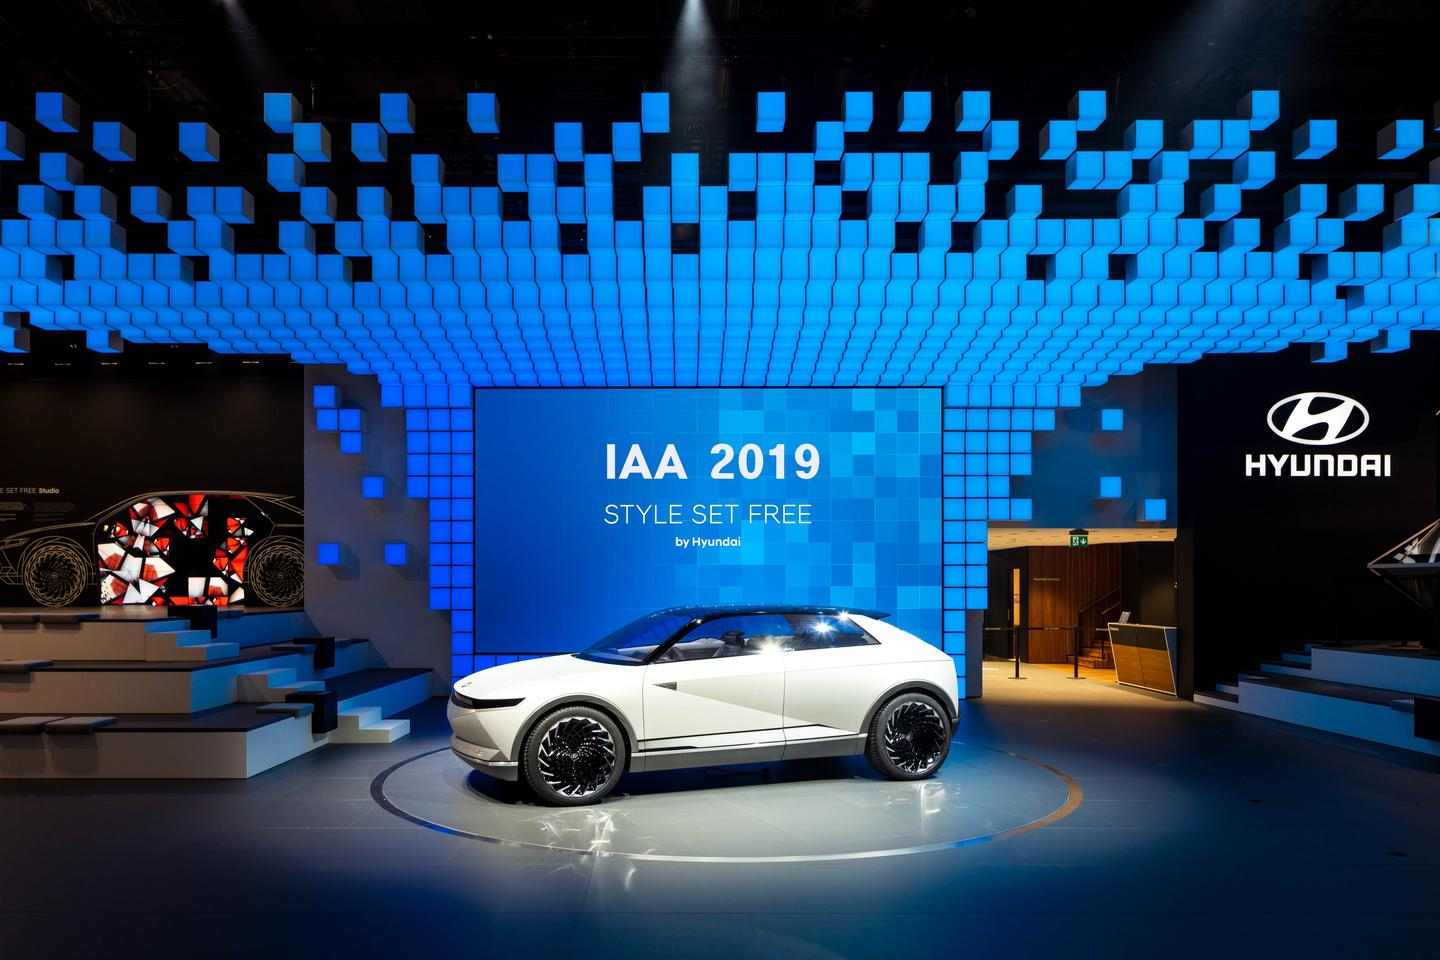 Hyundai has rolled into the Frankfurt Motor Show with a new concept built with autonomy and electric propulsion in mind